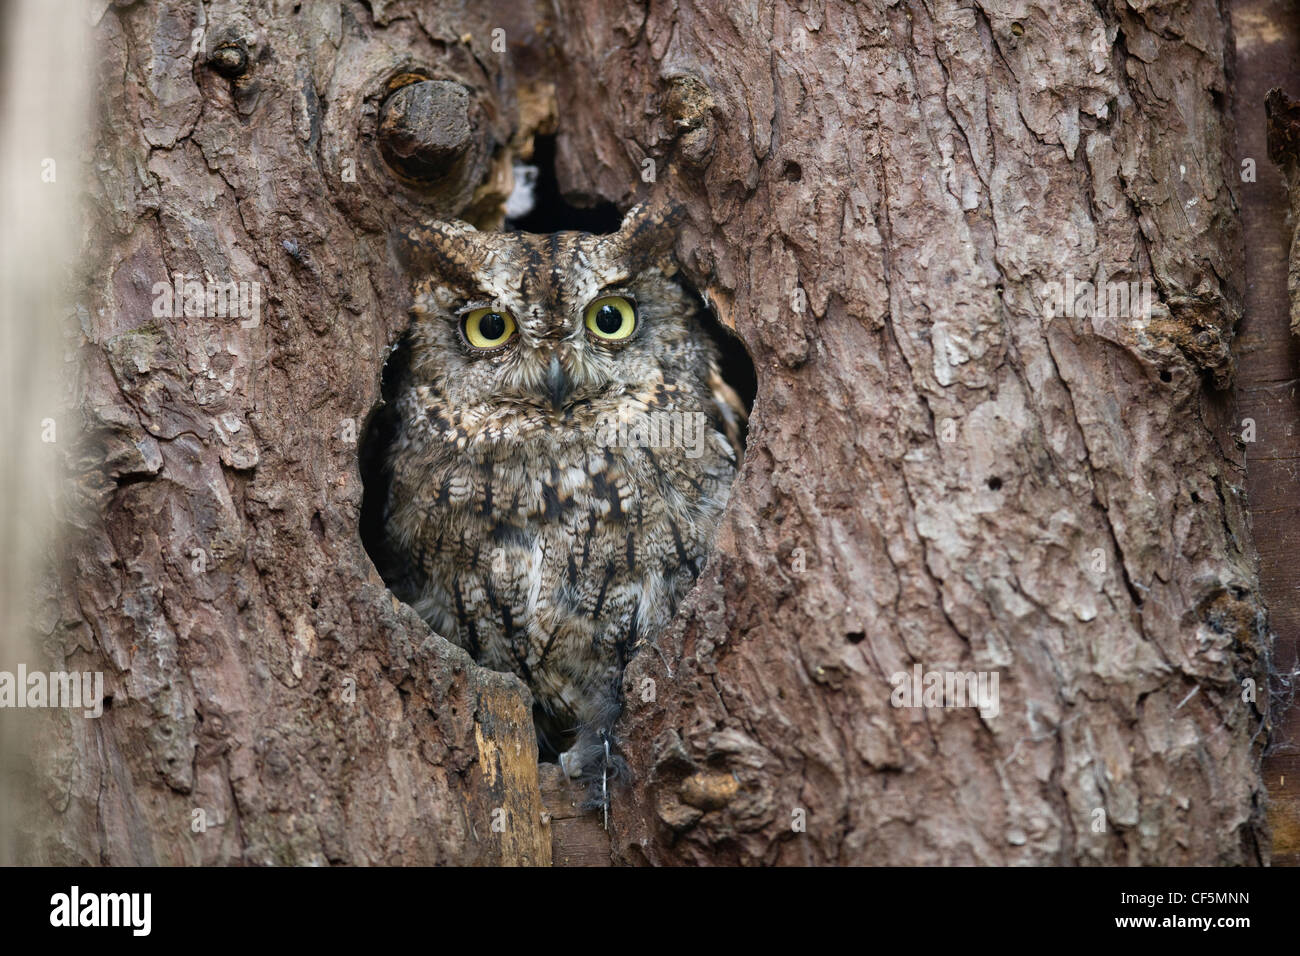 Owl camouflaged and sitting in a hole in an old tree trunk Stock Photo